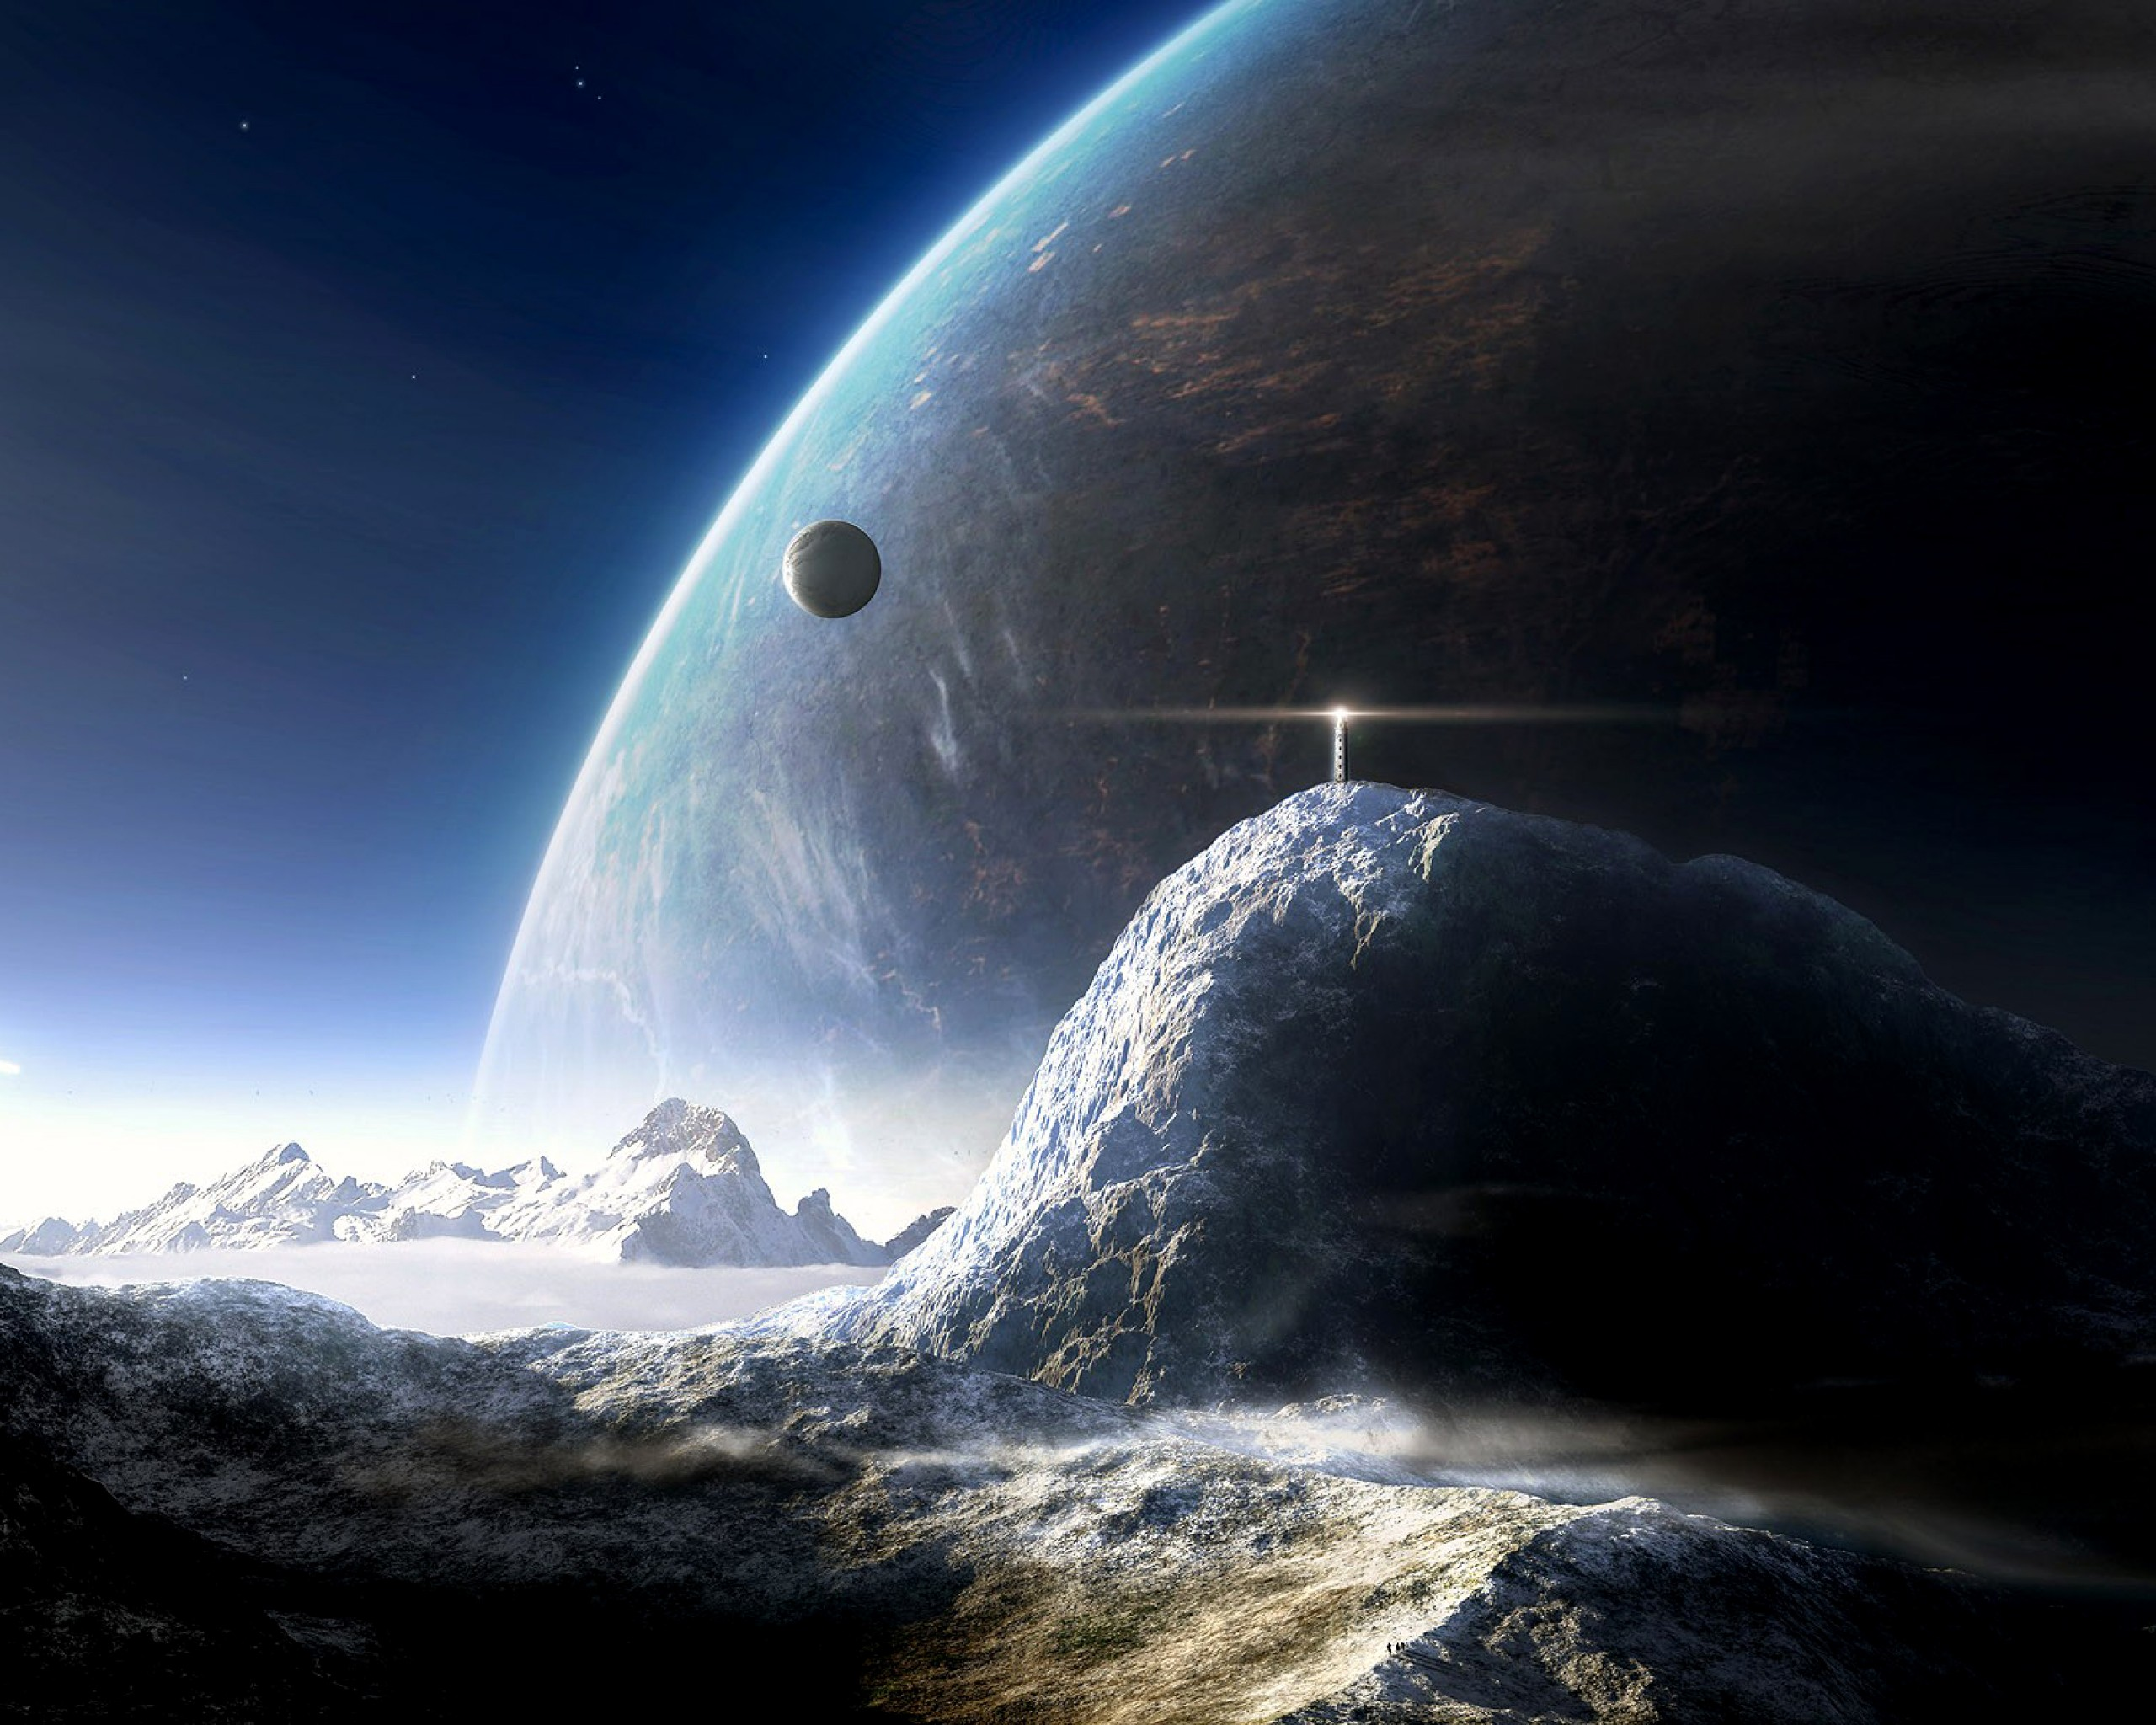 Outer space planet tower sci fi space landscape 2048x2560